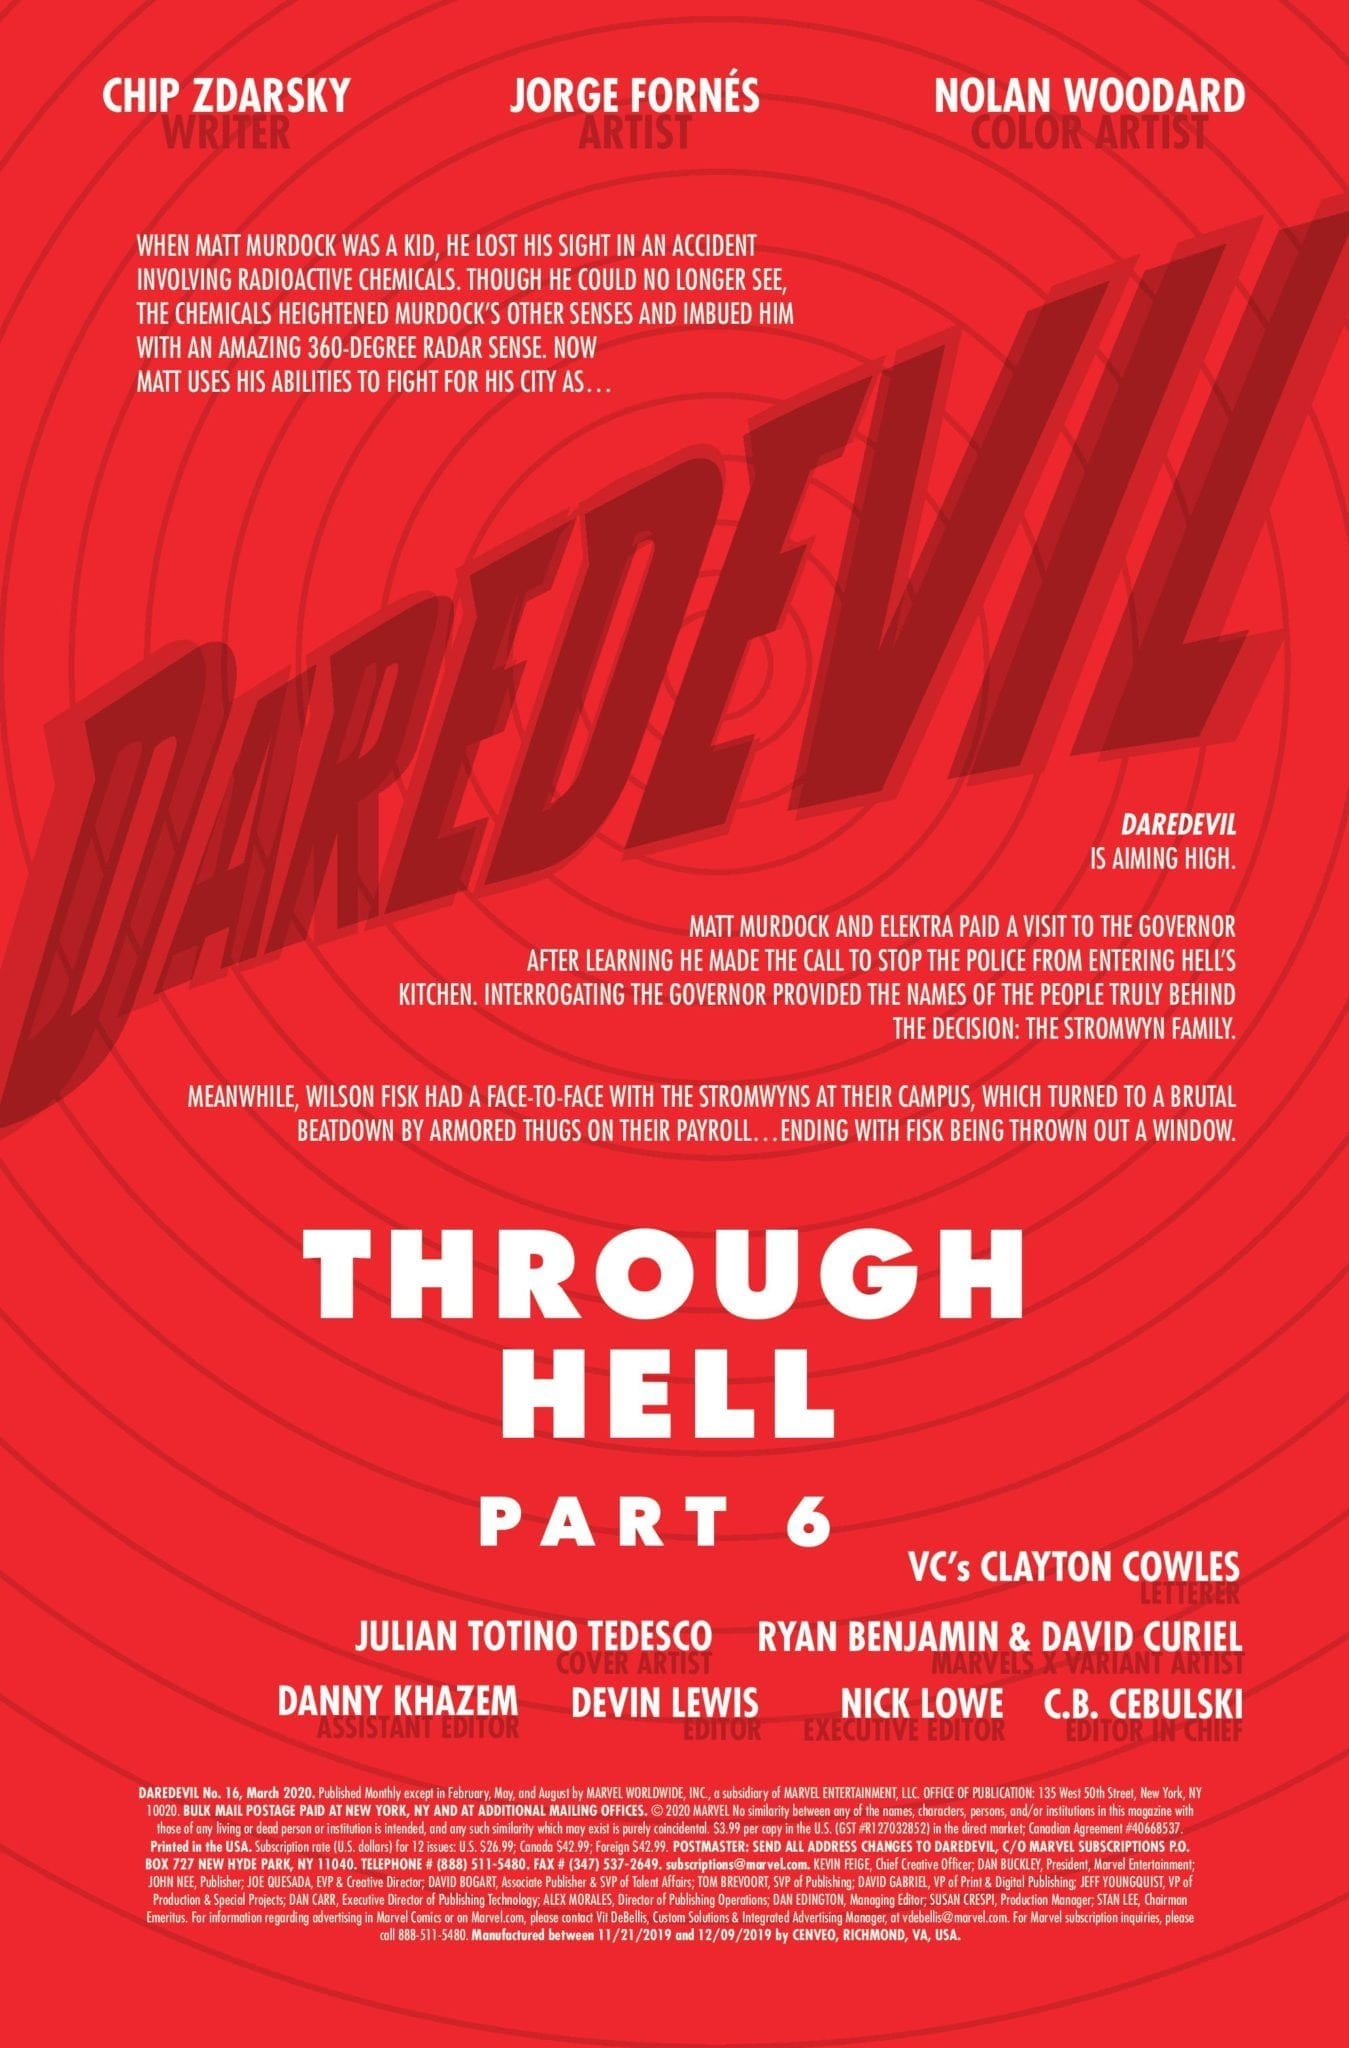 Exclusive Christmas Preview: DAREDEVIL #16